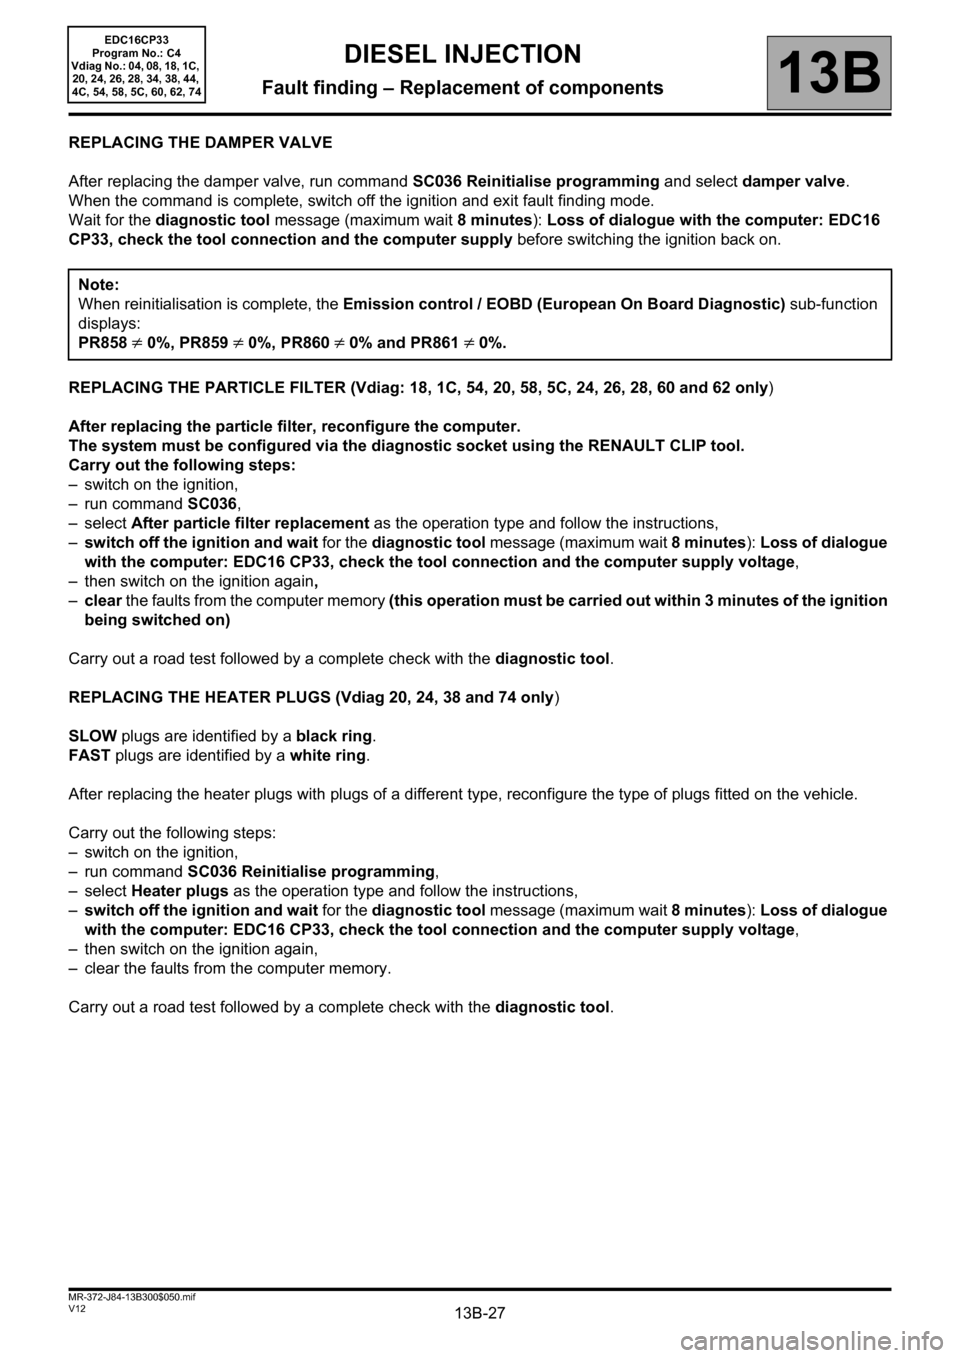 RENAULT SCENIC 2012 J95 / 3.G Engine And Peripherals EDC16CP33 Workshop Manual, Page 27